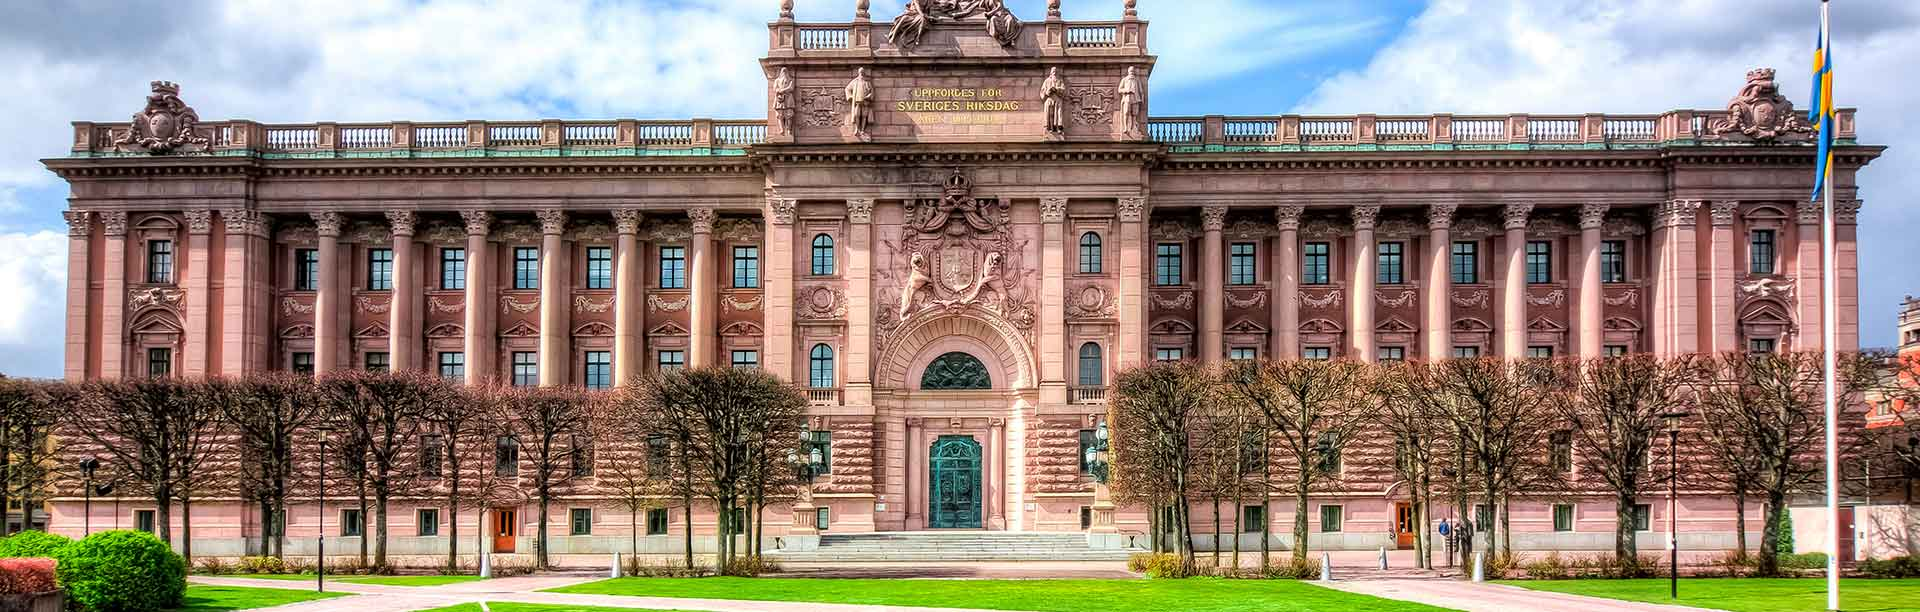 The royal palace in Sweden